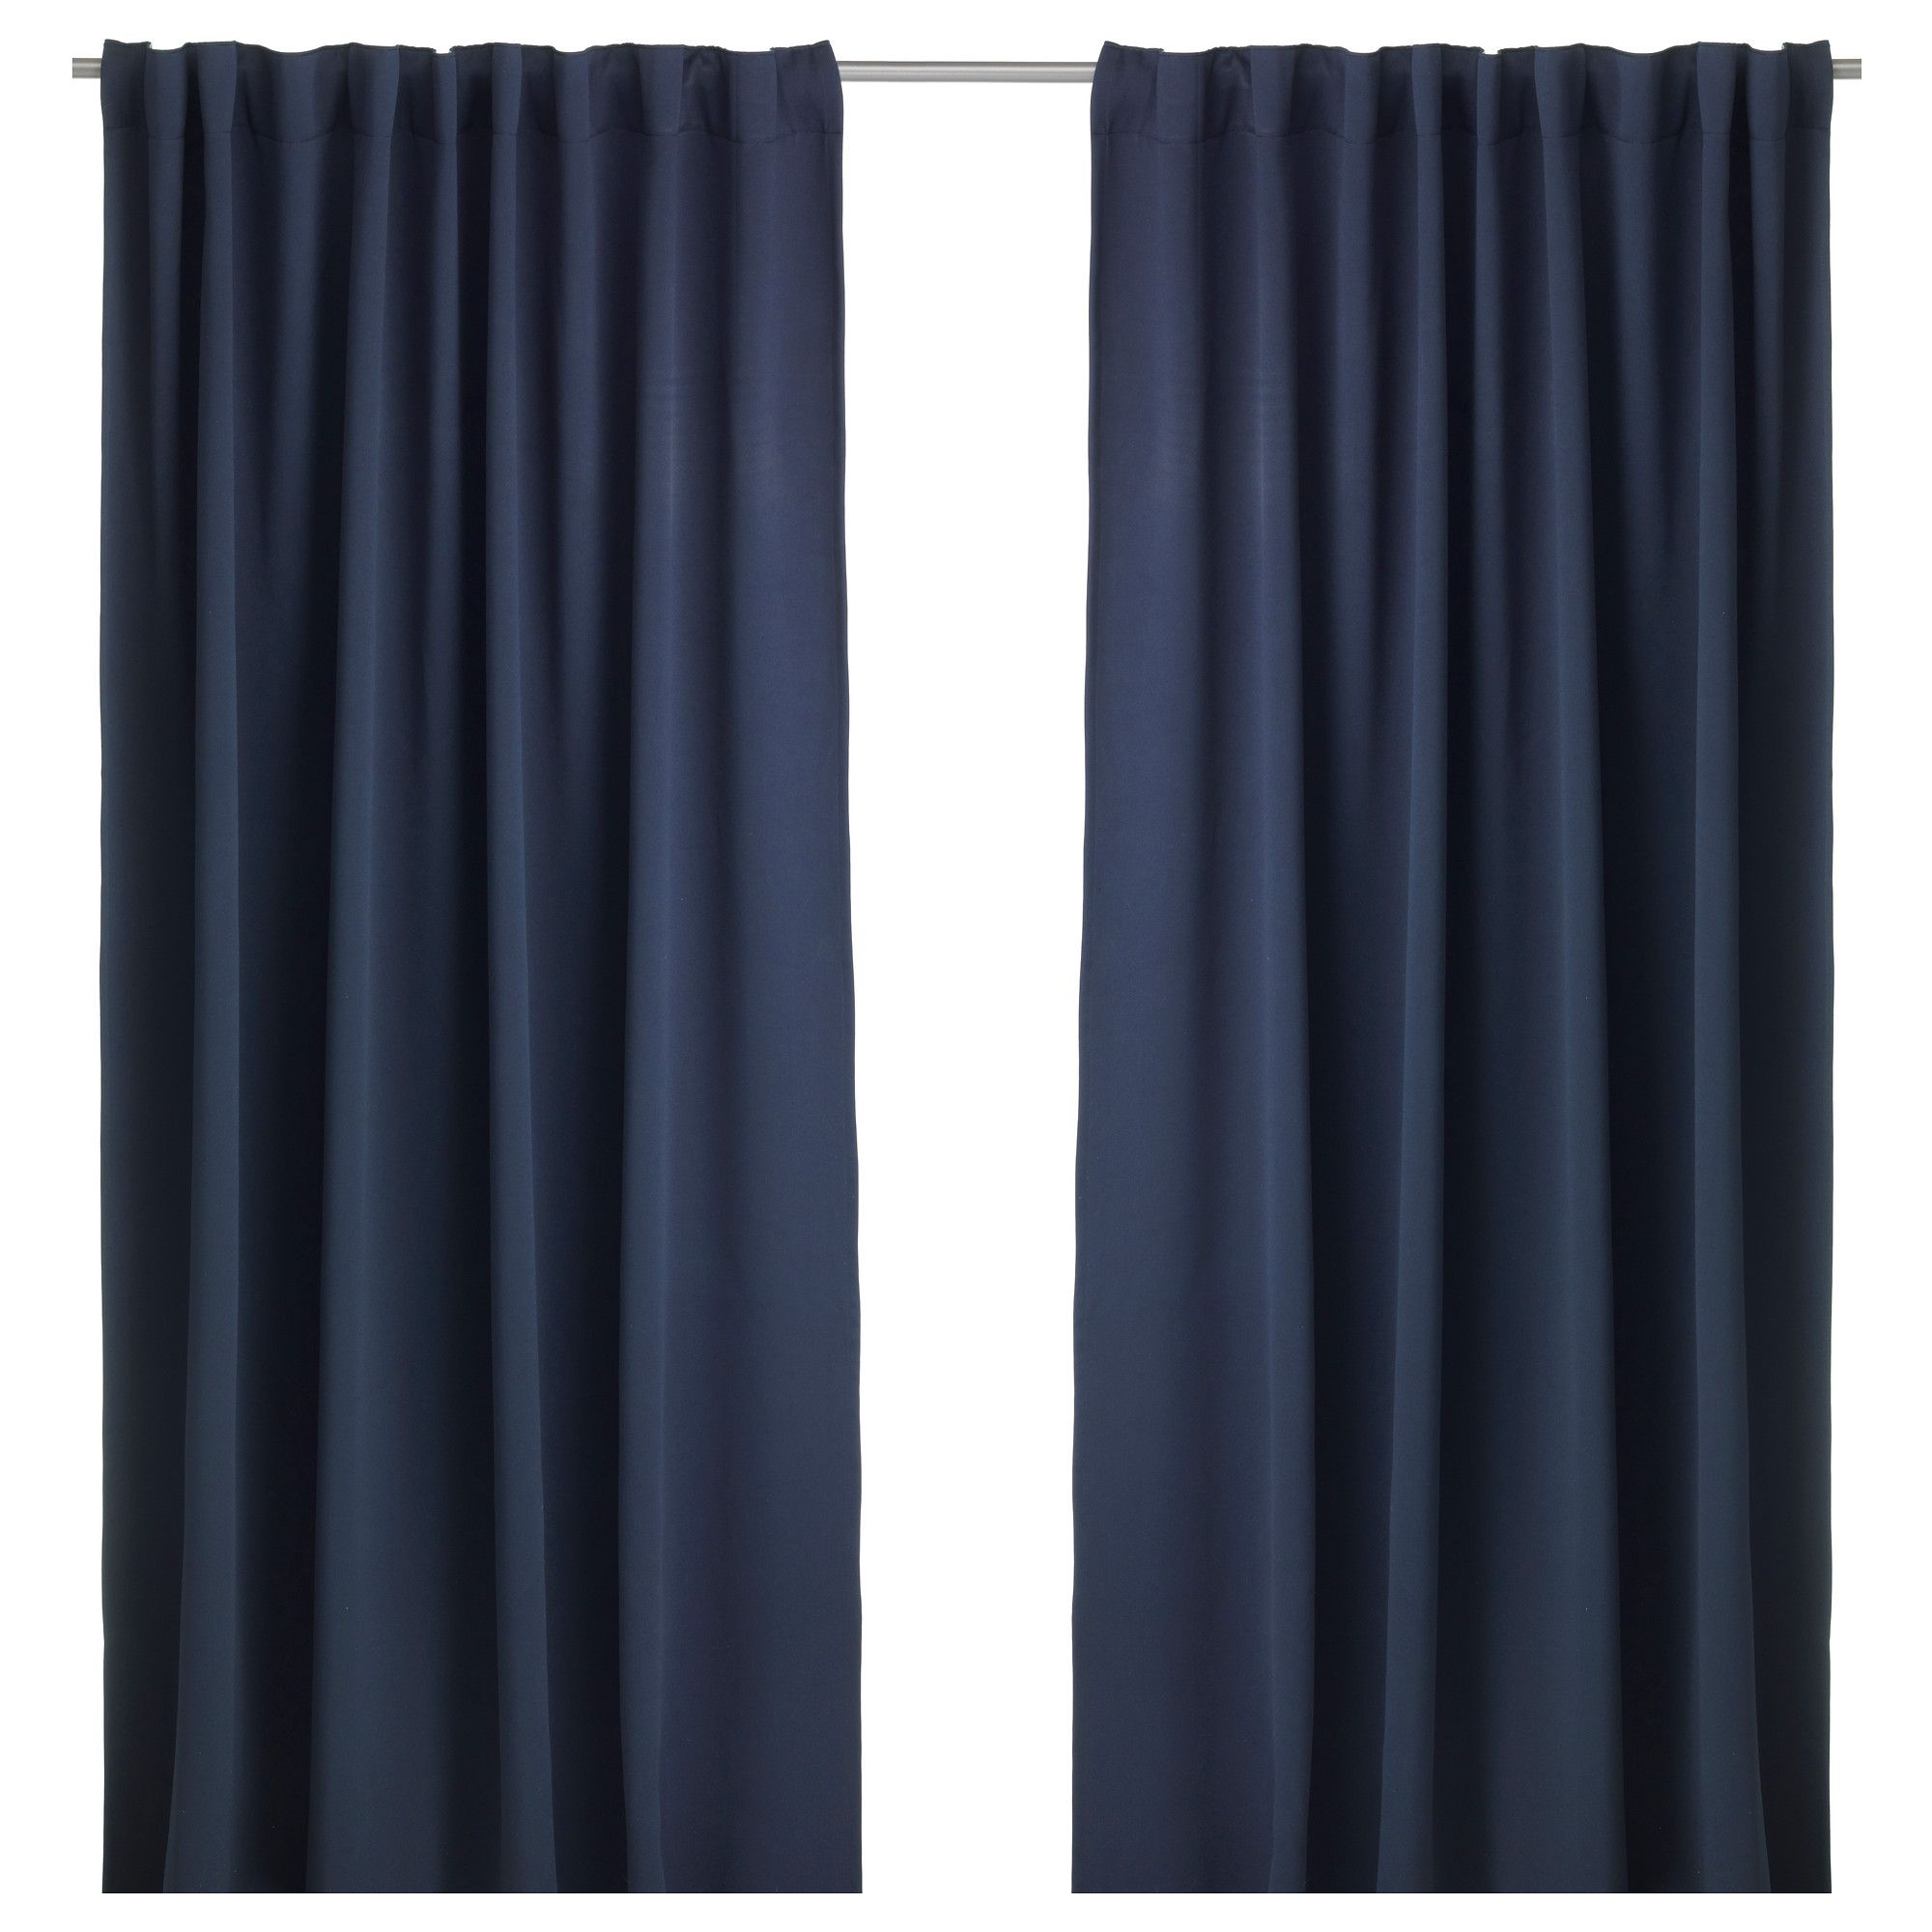 insulated curtains grommet drapes expand anna to p thermalace pair click winter tm curtain